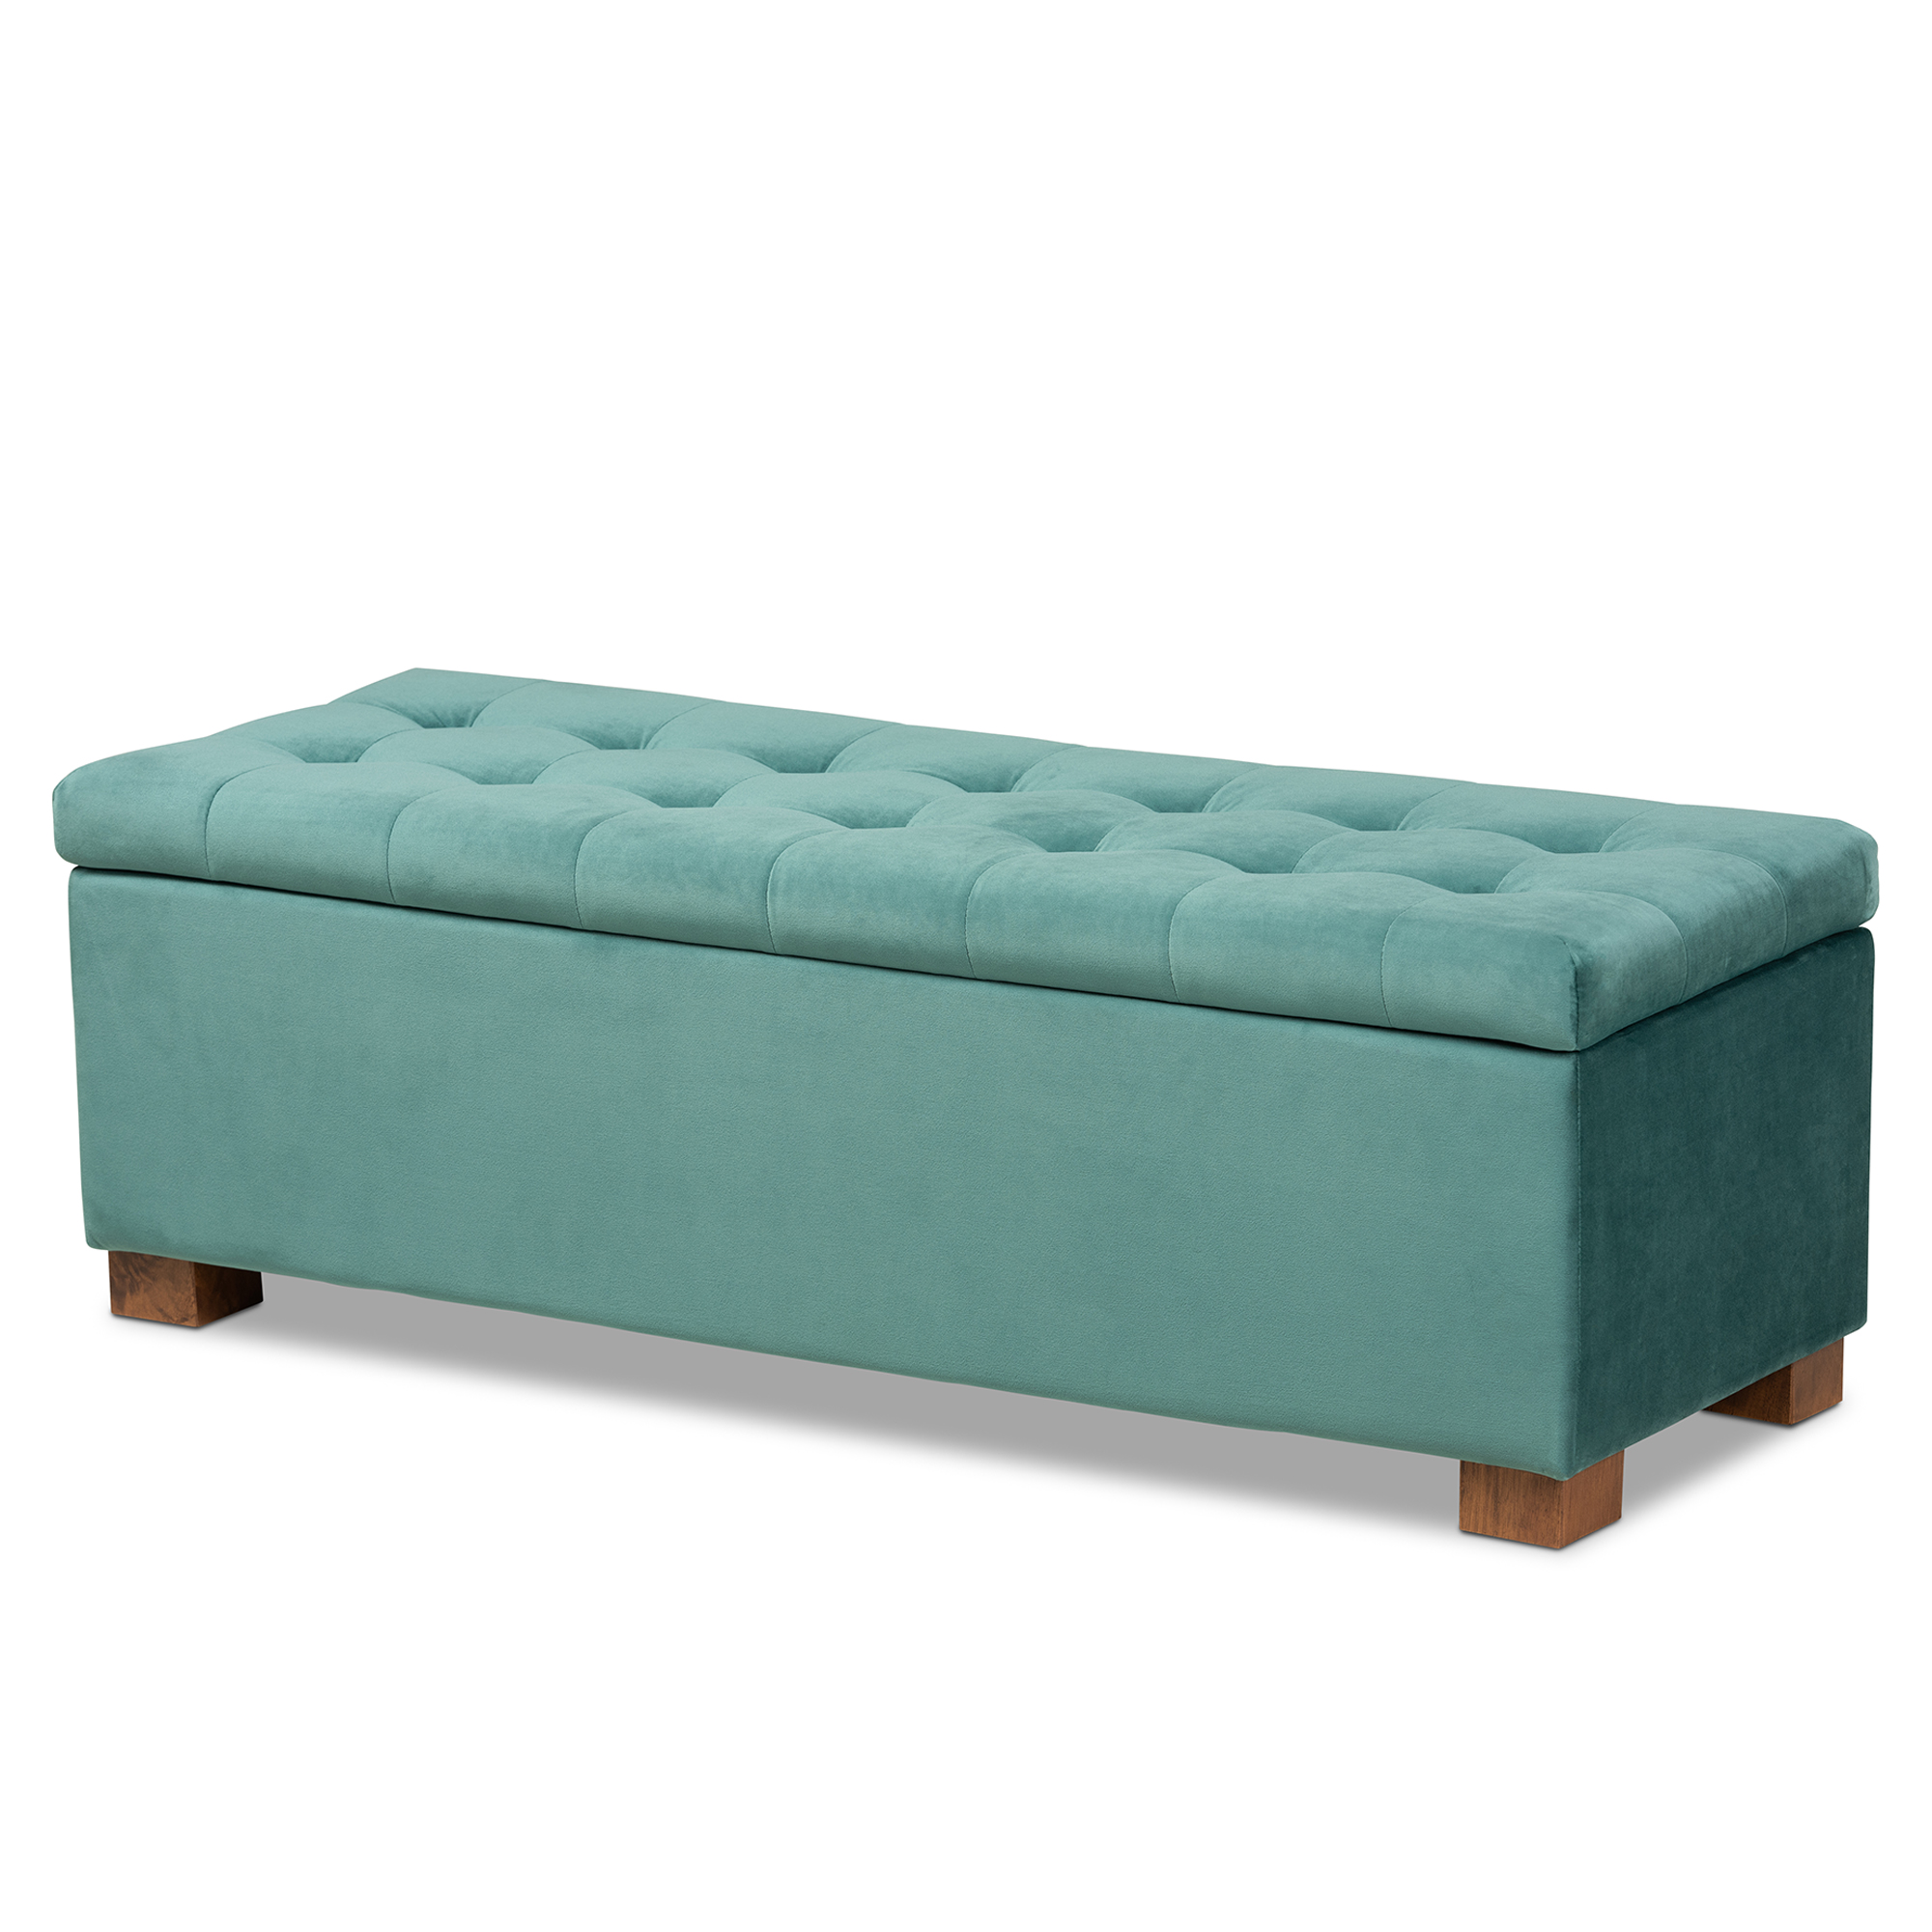 baxton studio roanoke modern and contemporary teal blue velvet fabric upholstered grid tufted storage ottoman bench